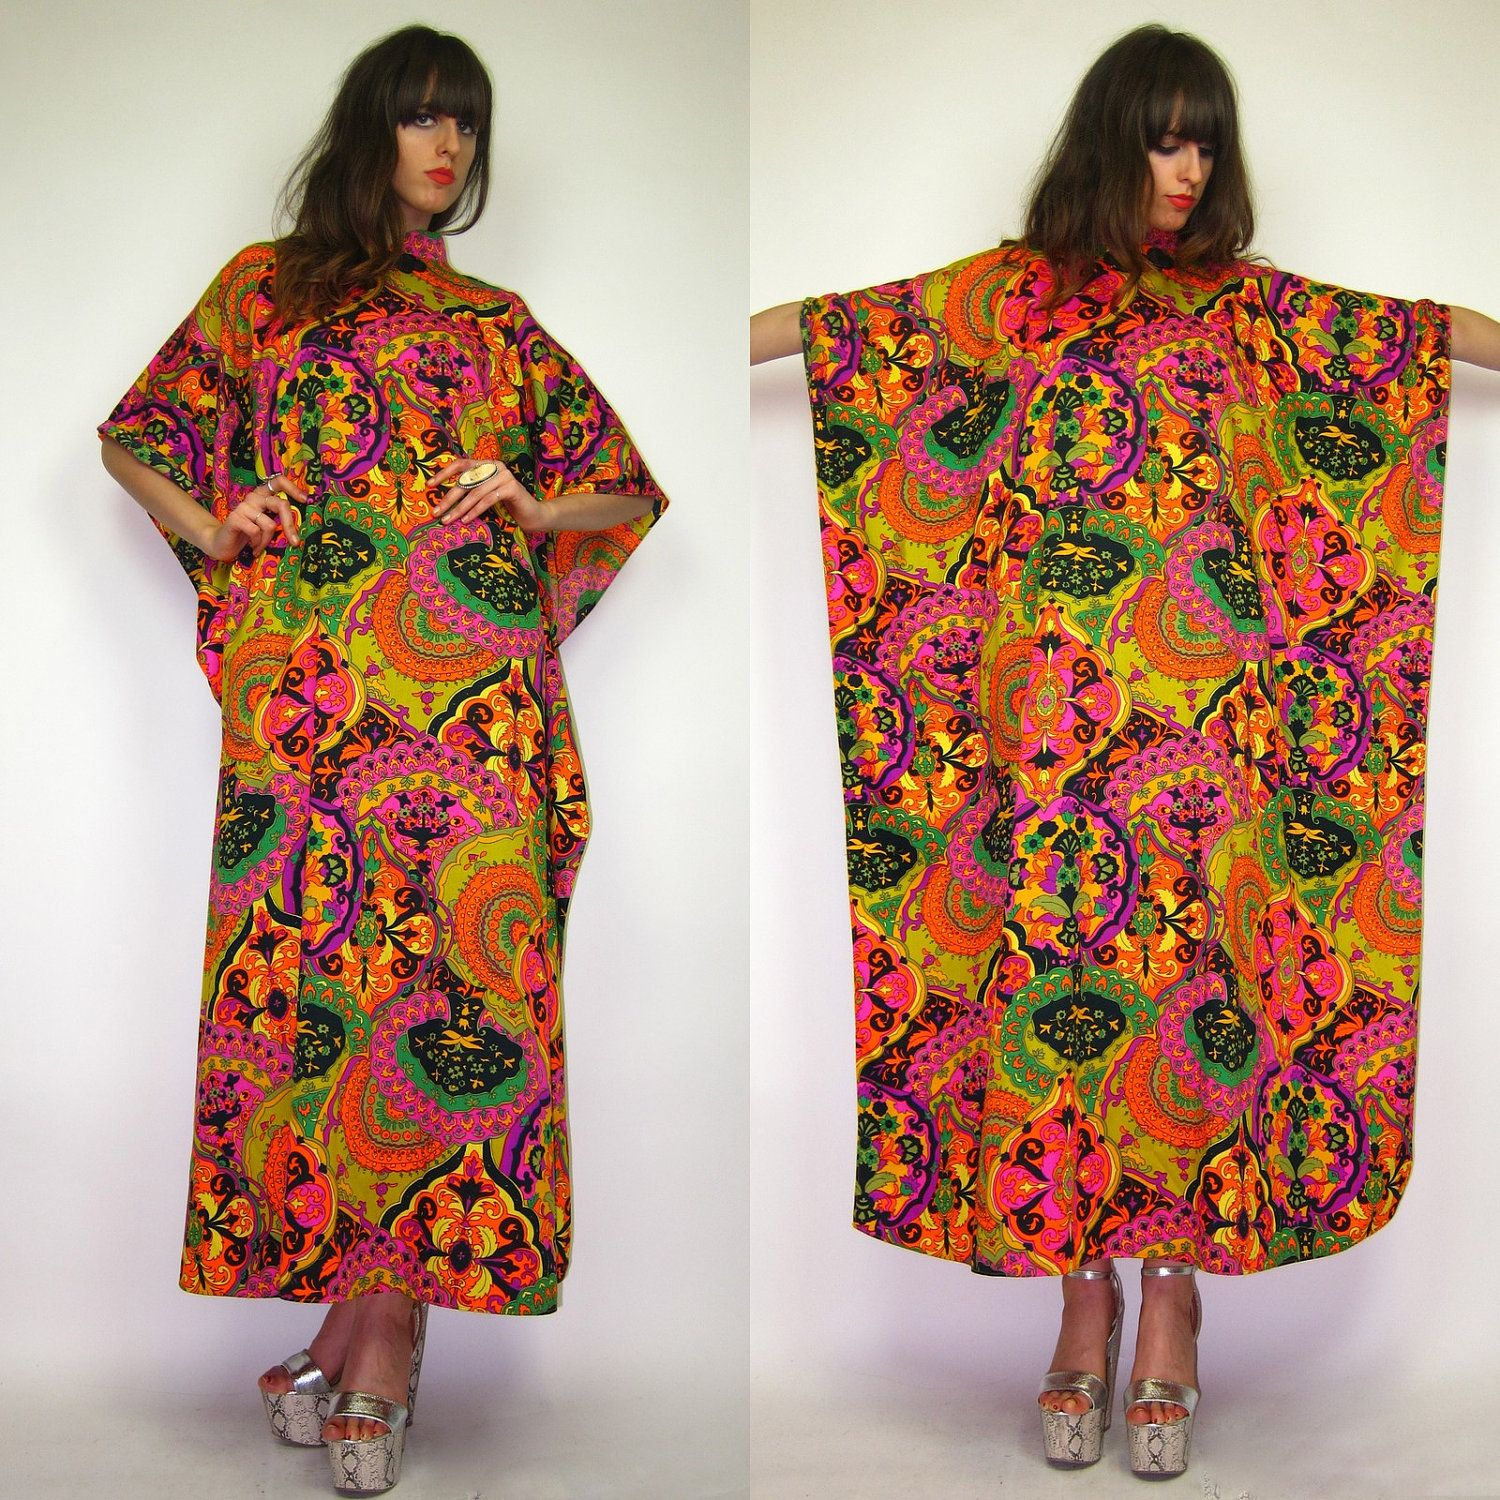 8547338d206 1960 70 s Psychedelic floral demask moo moo chic hippie caftan dress.   57.00